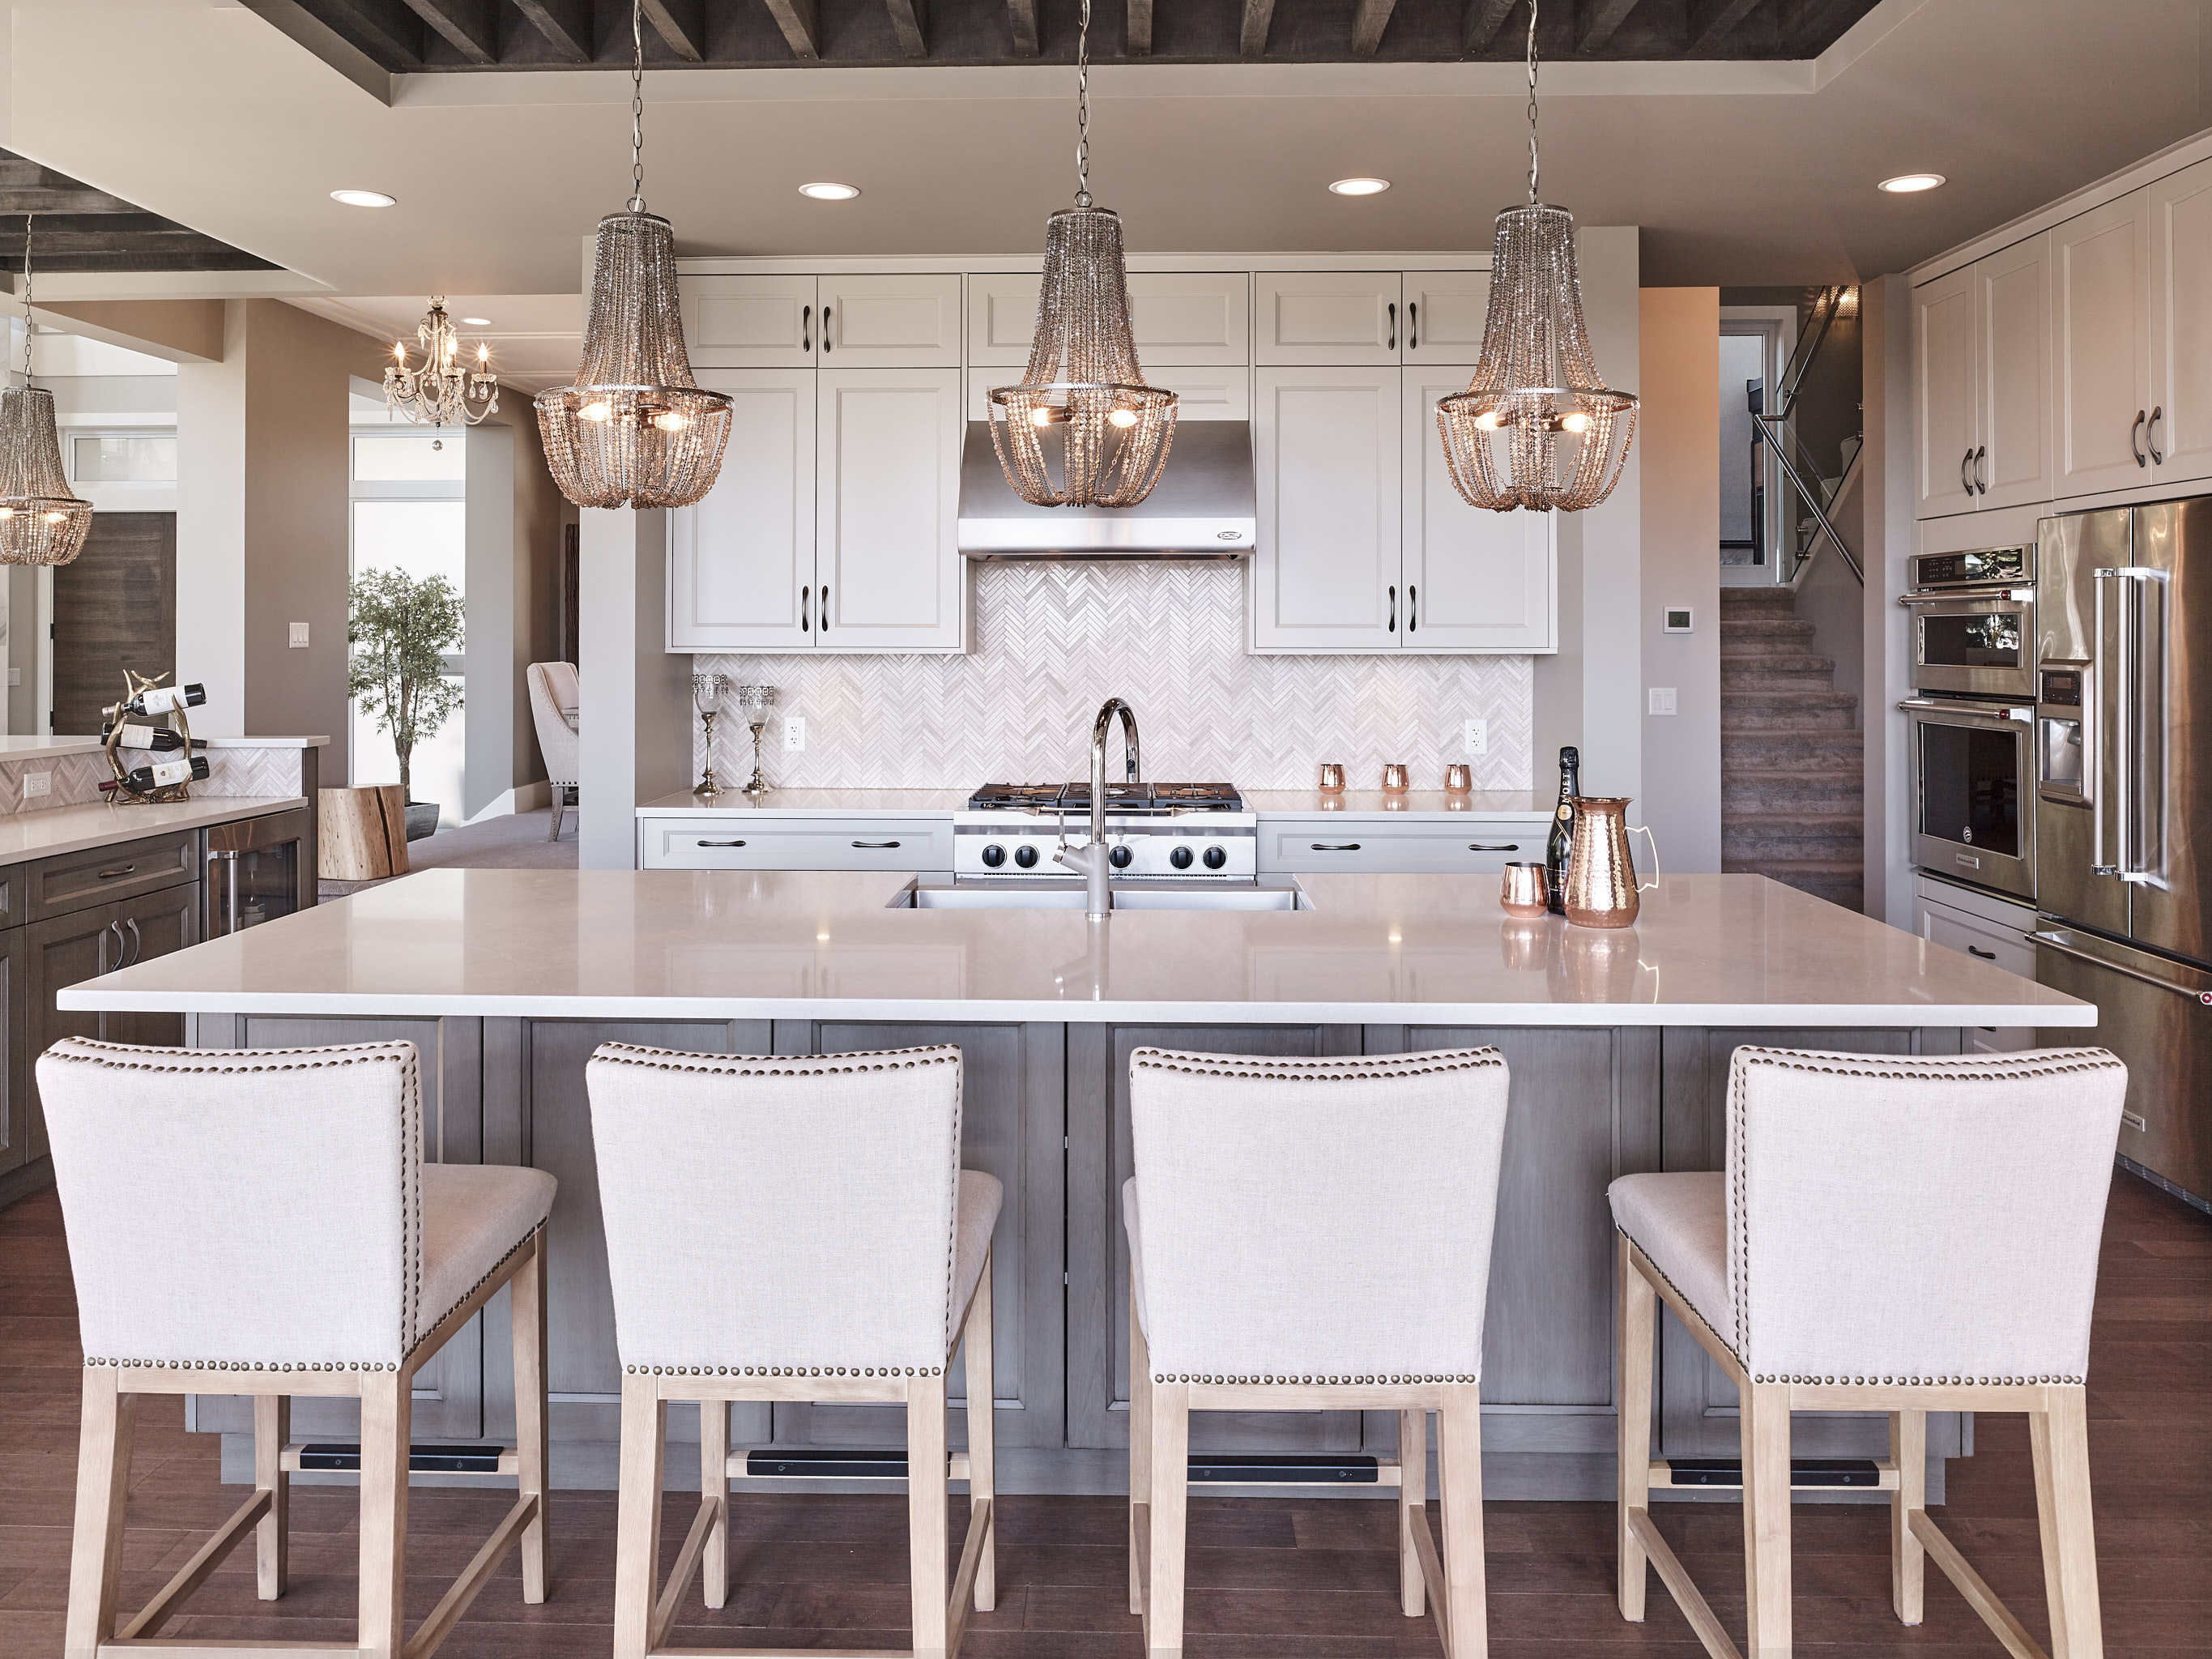 Blue Mountain Kitchens Maple Ridge Coquitlam Kitchen Cabinetry